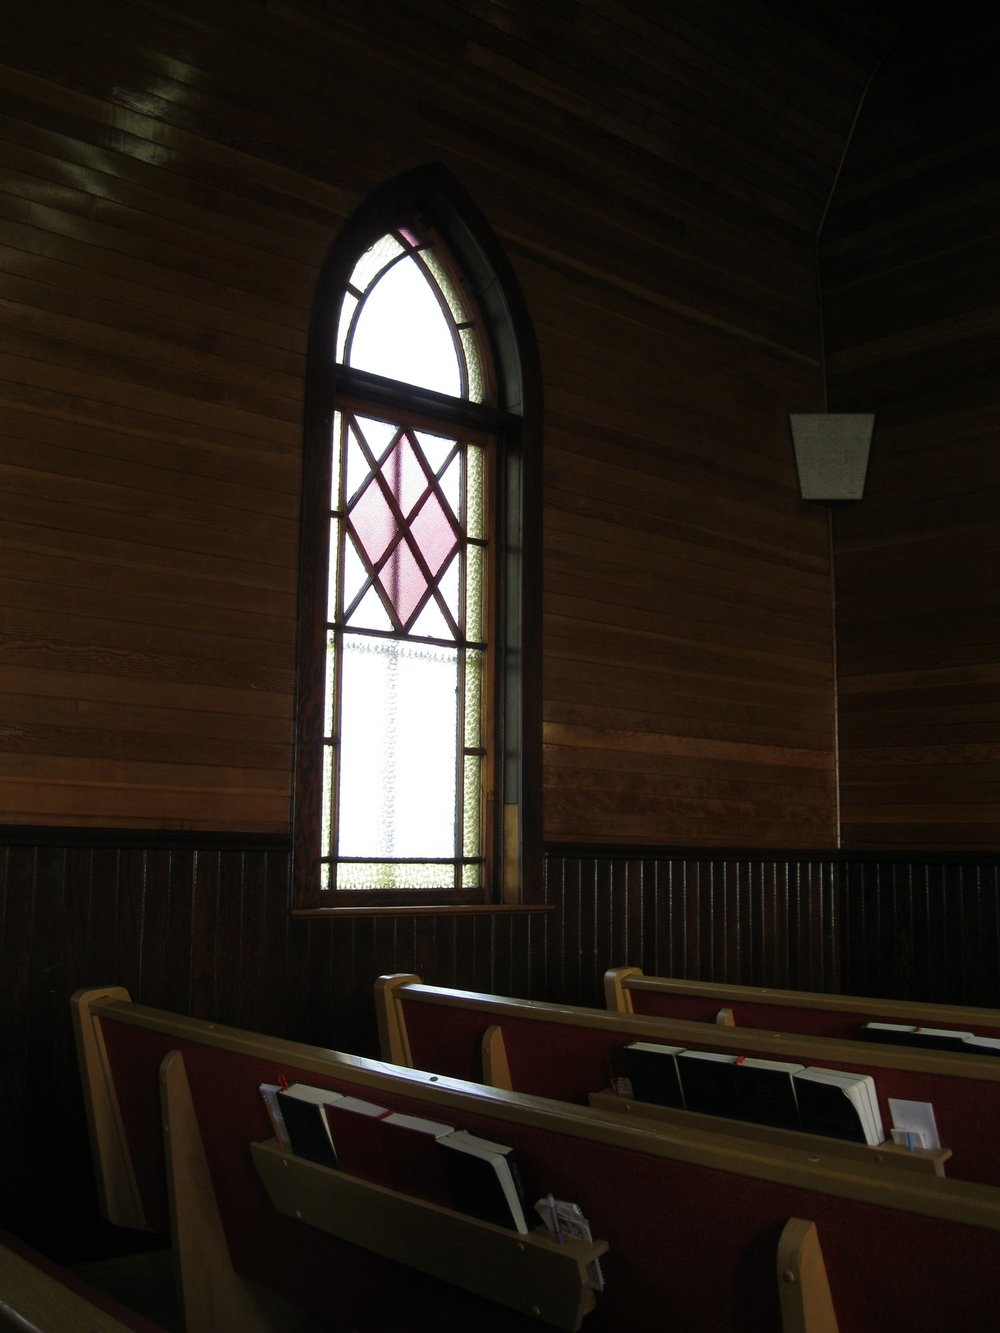 AN OPEN LETTER TO COLLEGIANS WHO PROFESS CHRIST WITHOUT COMMITMENT TO A CHURCH